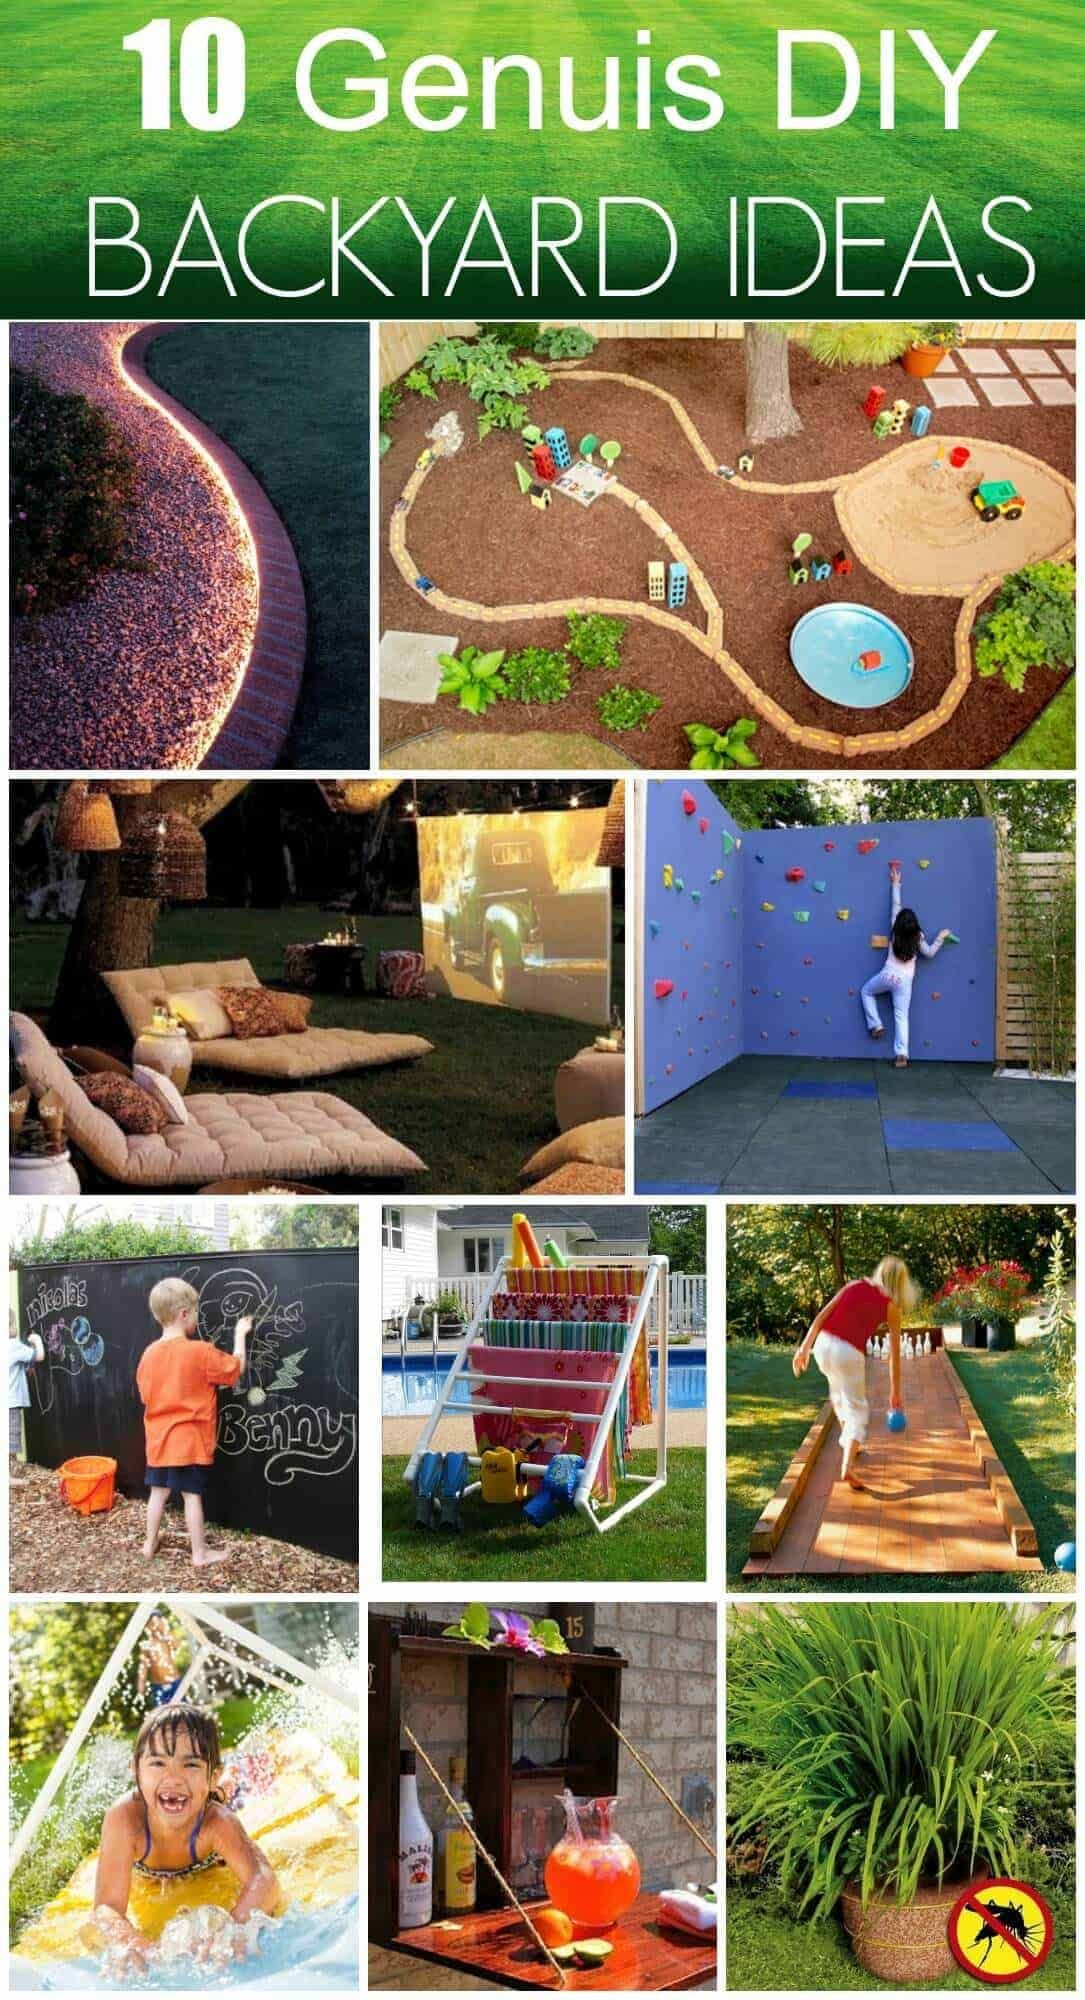 Genius DIY Backyard Ideas that will Transform your Yard!